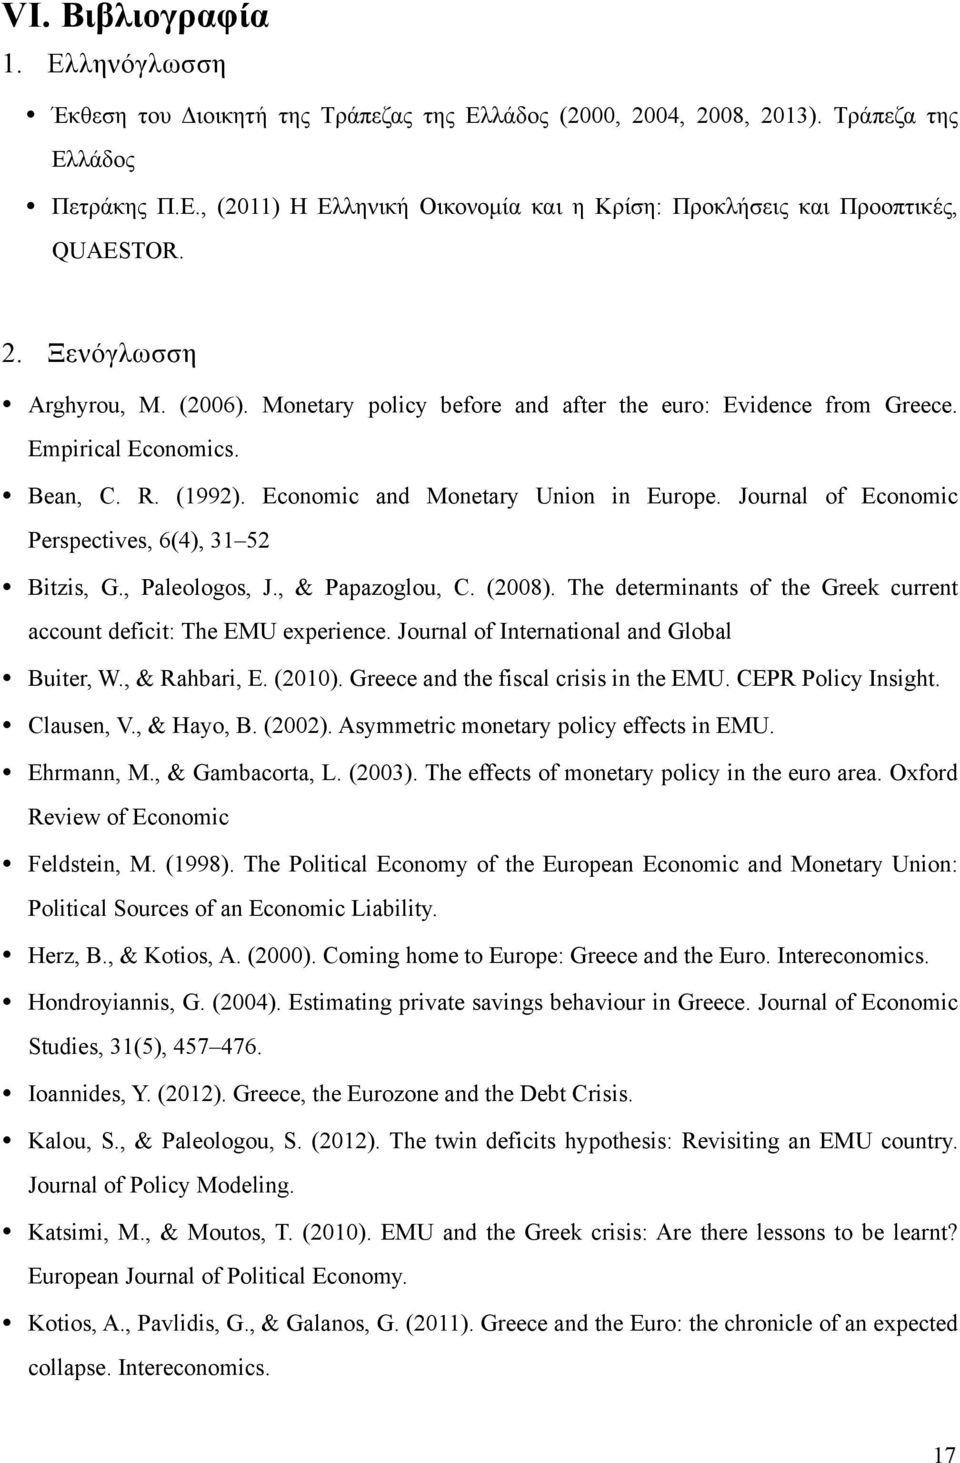 Journal of Economic Perspectives, 6(4), 31 52 Bitzis, G., Paleologos, J., & Papazoglou, C. (2008). The determinants of the Greek current account deficit: The EMU experience.